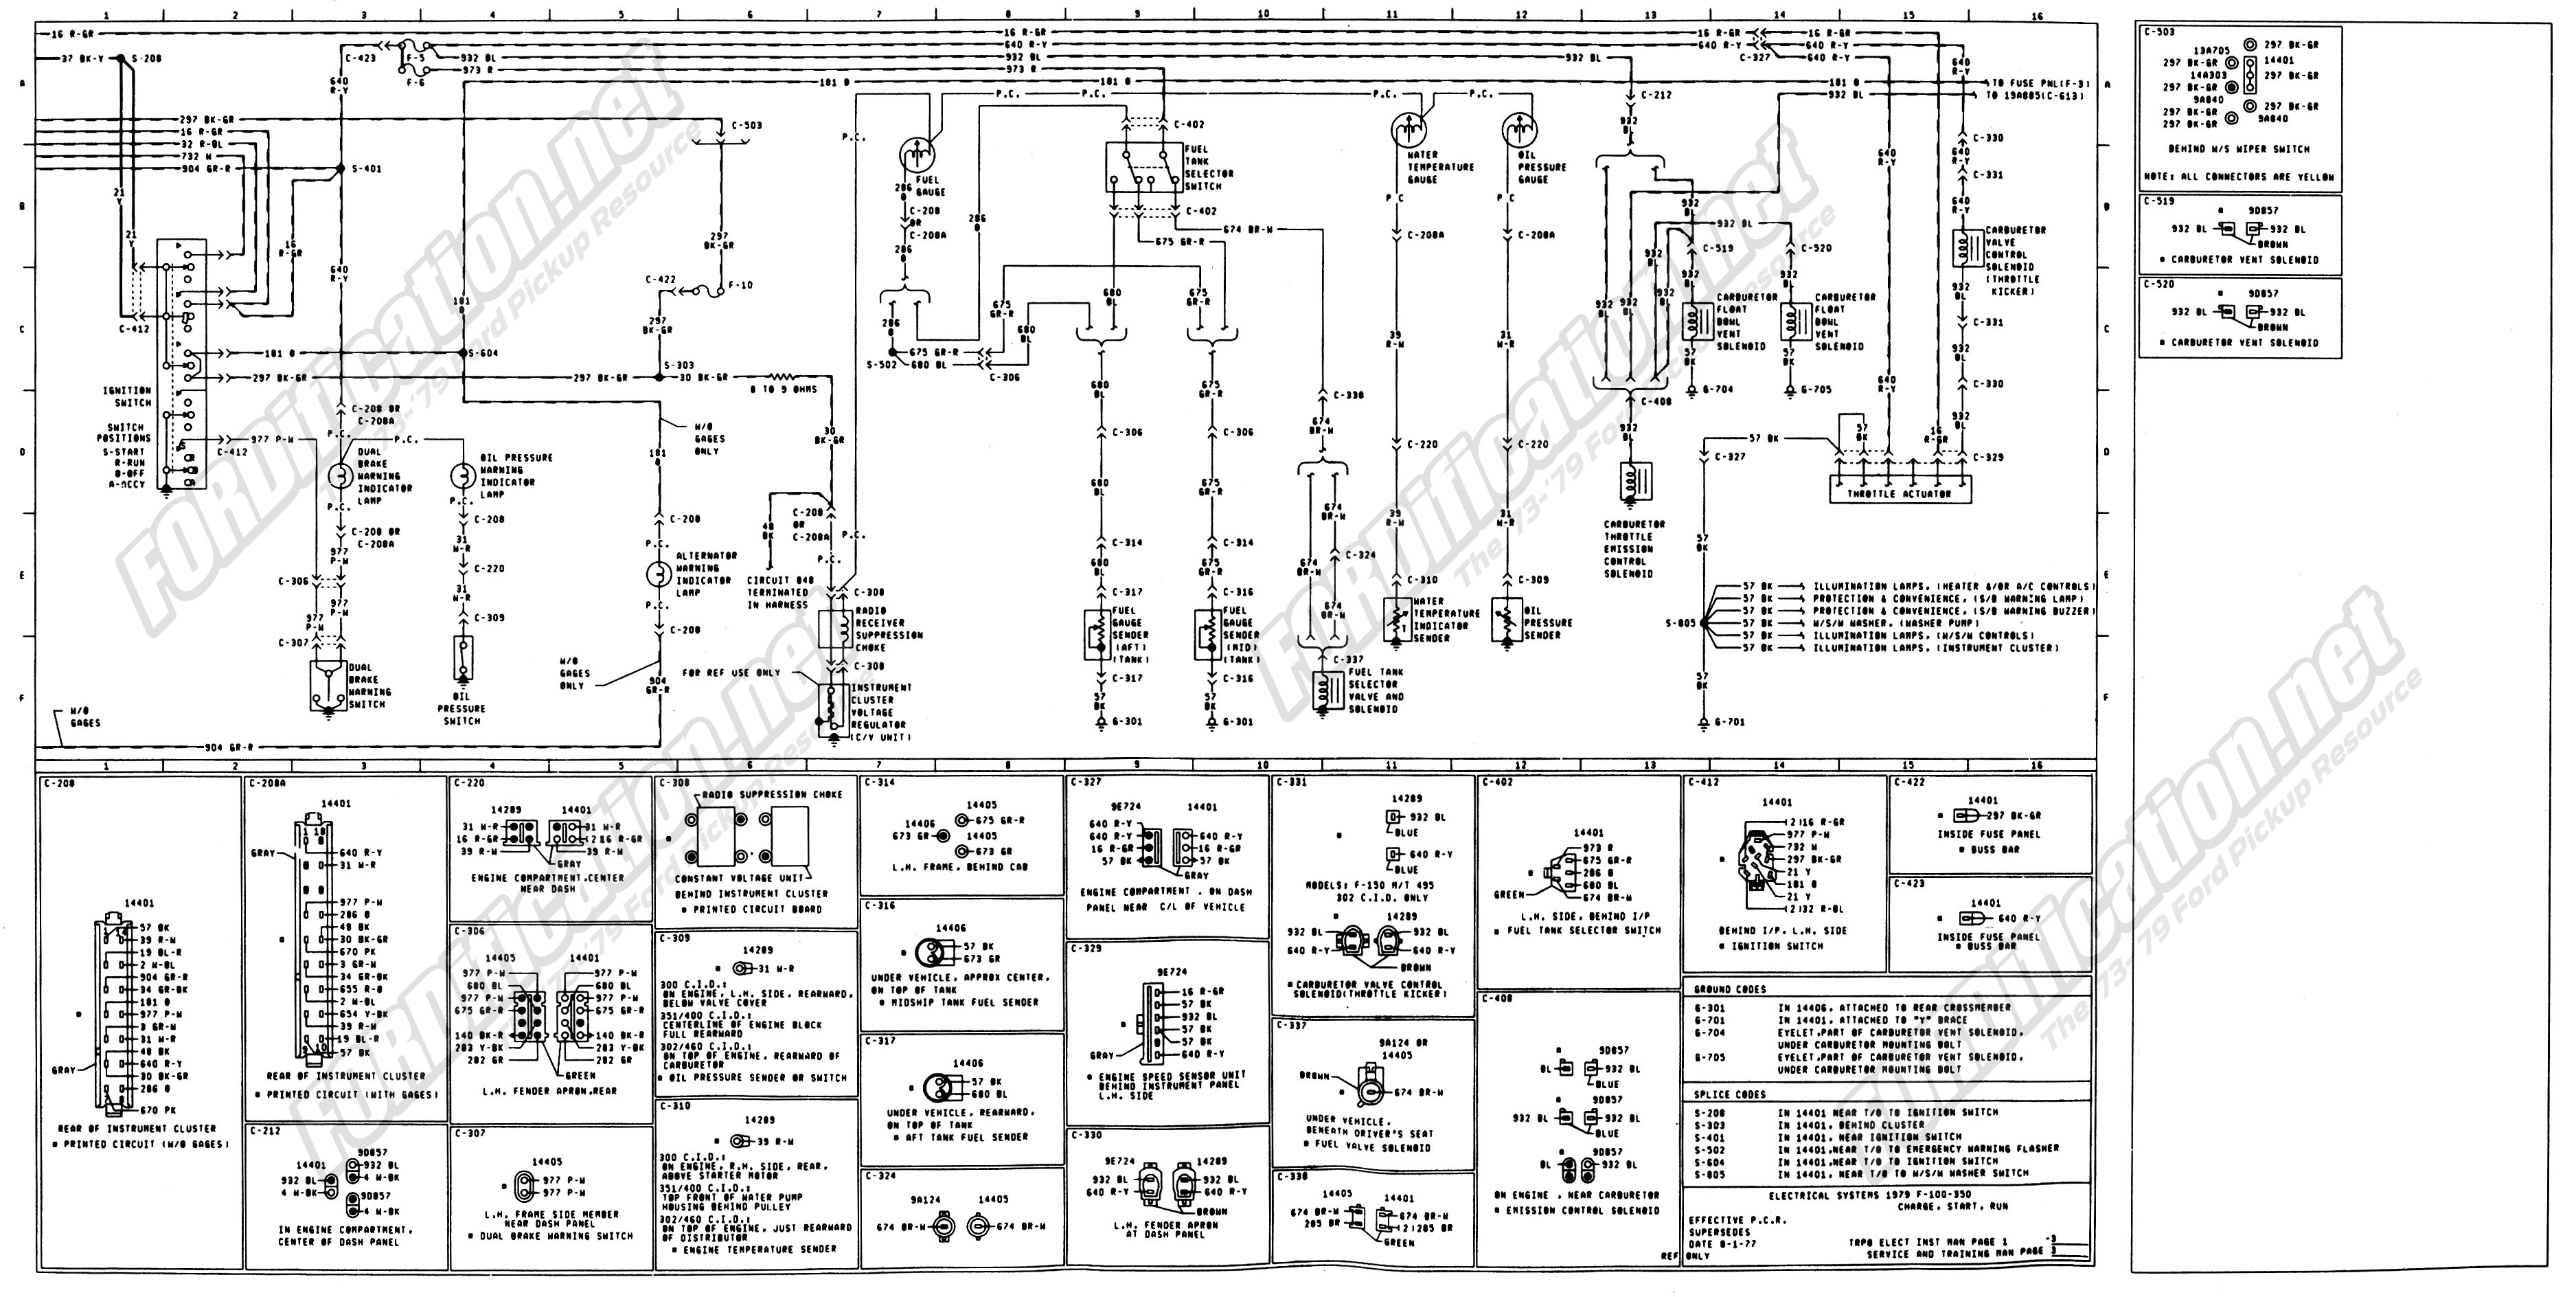 Engine Wiring Diagram 2006 Ford F650 Worksheet And 2005 F750 Fuse Box Coolant Gauge Schematic Detailed Schematics Rh Jvpacks Com 2004 Headlight Diagrams